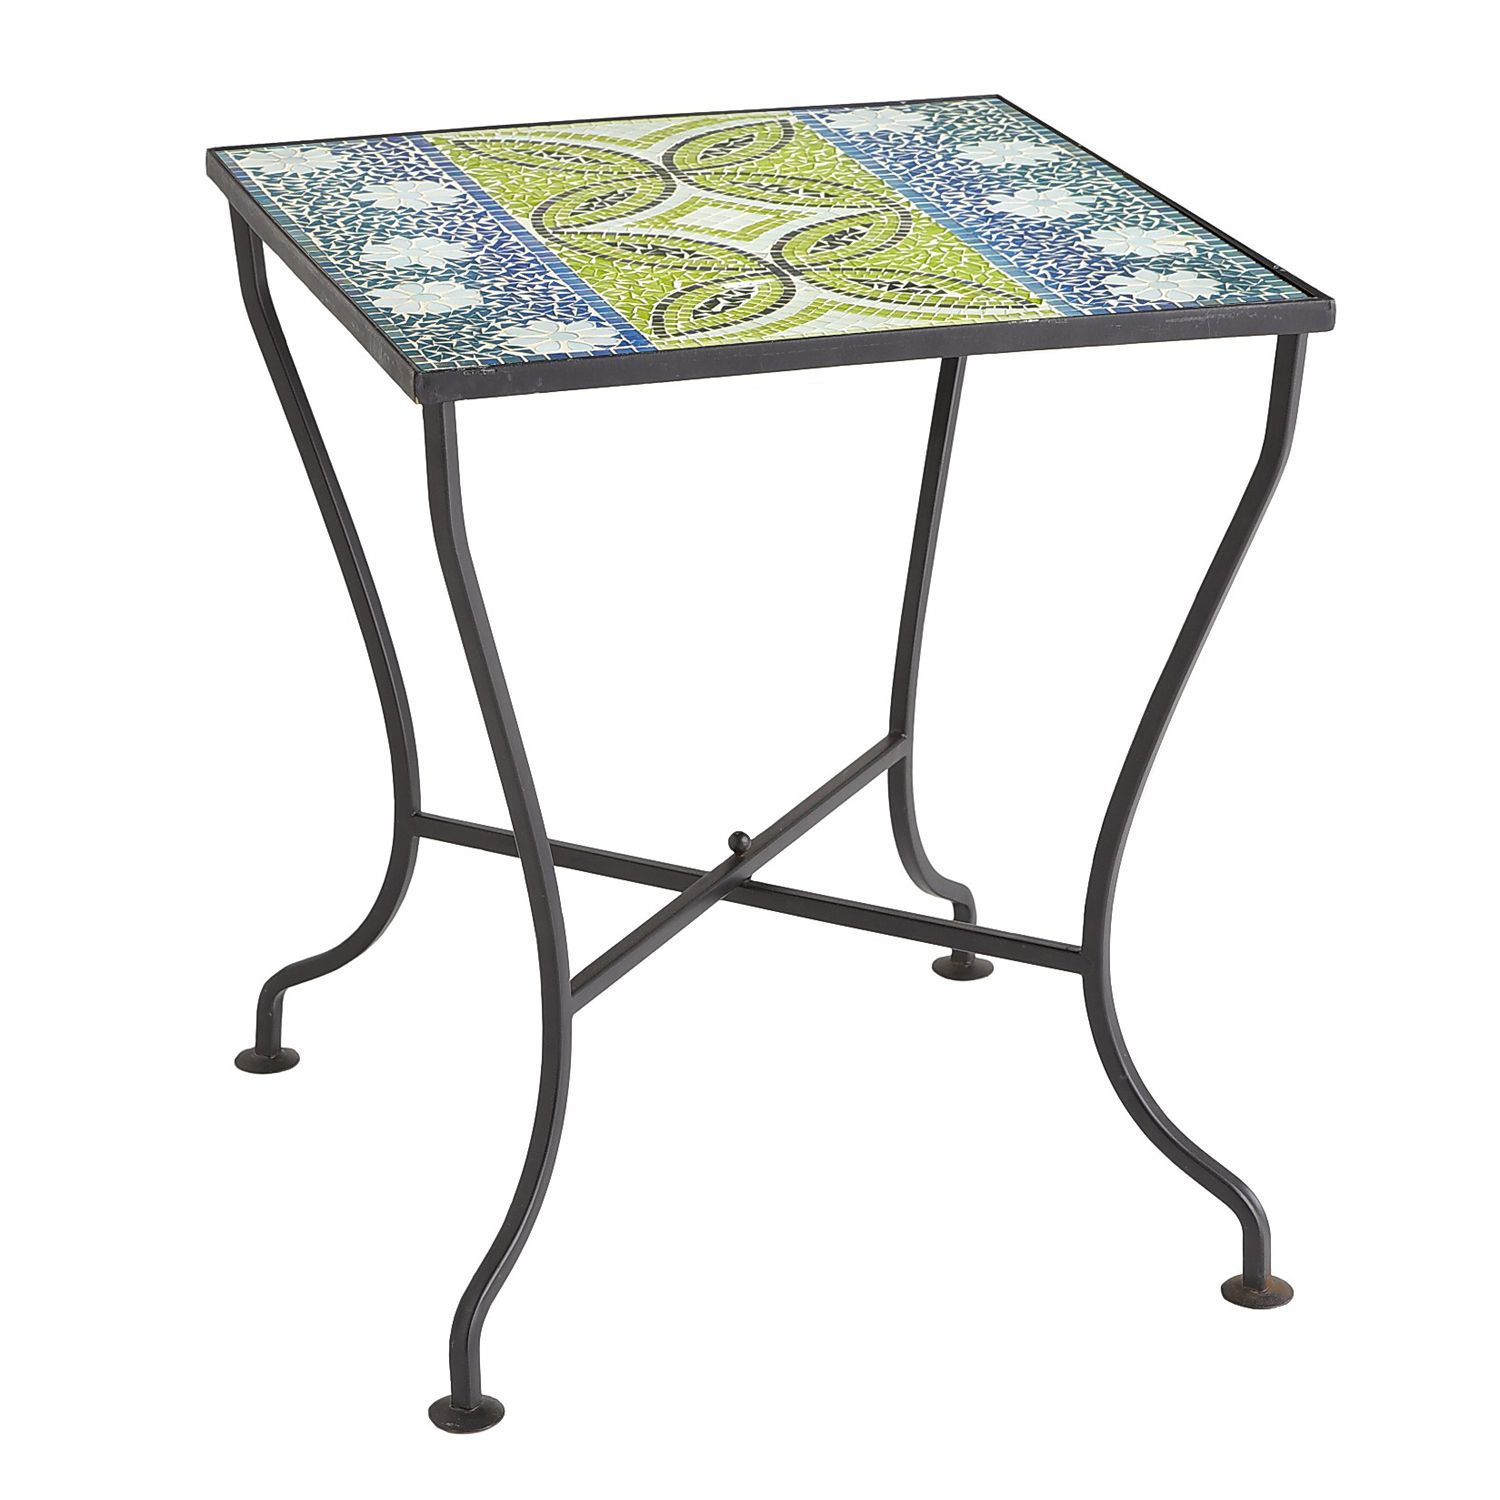 lani mosaic accent table pier imports patio outdoor pottery barn marble small corner end counter high kitchen inch wide west elm morten lamp tall one wall decor glass top coffee